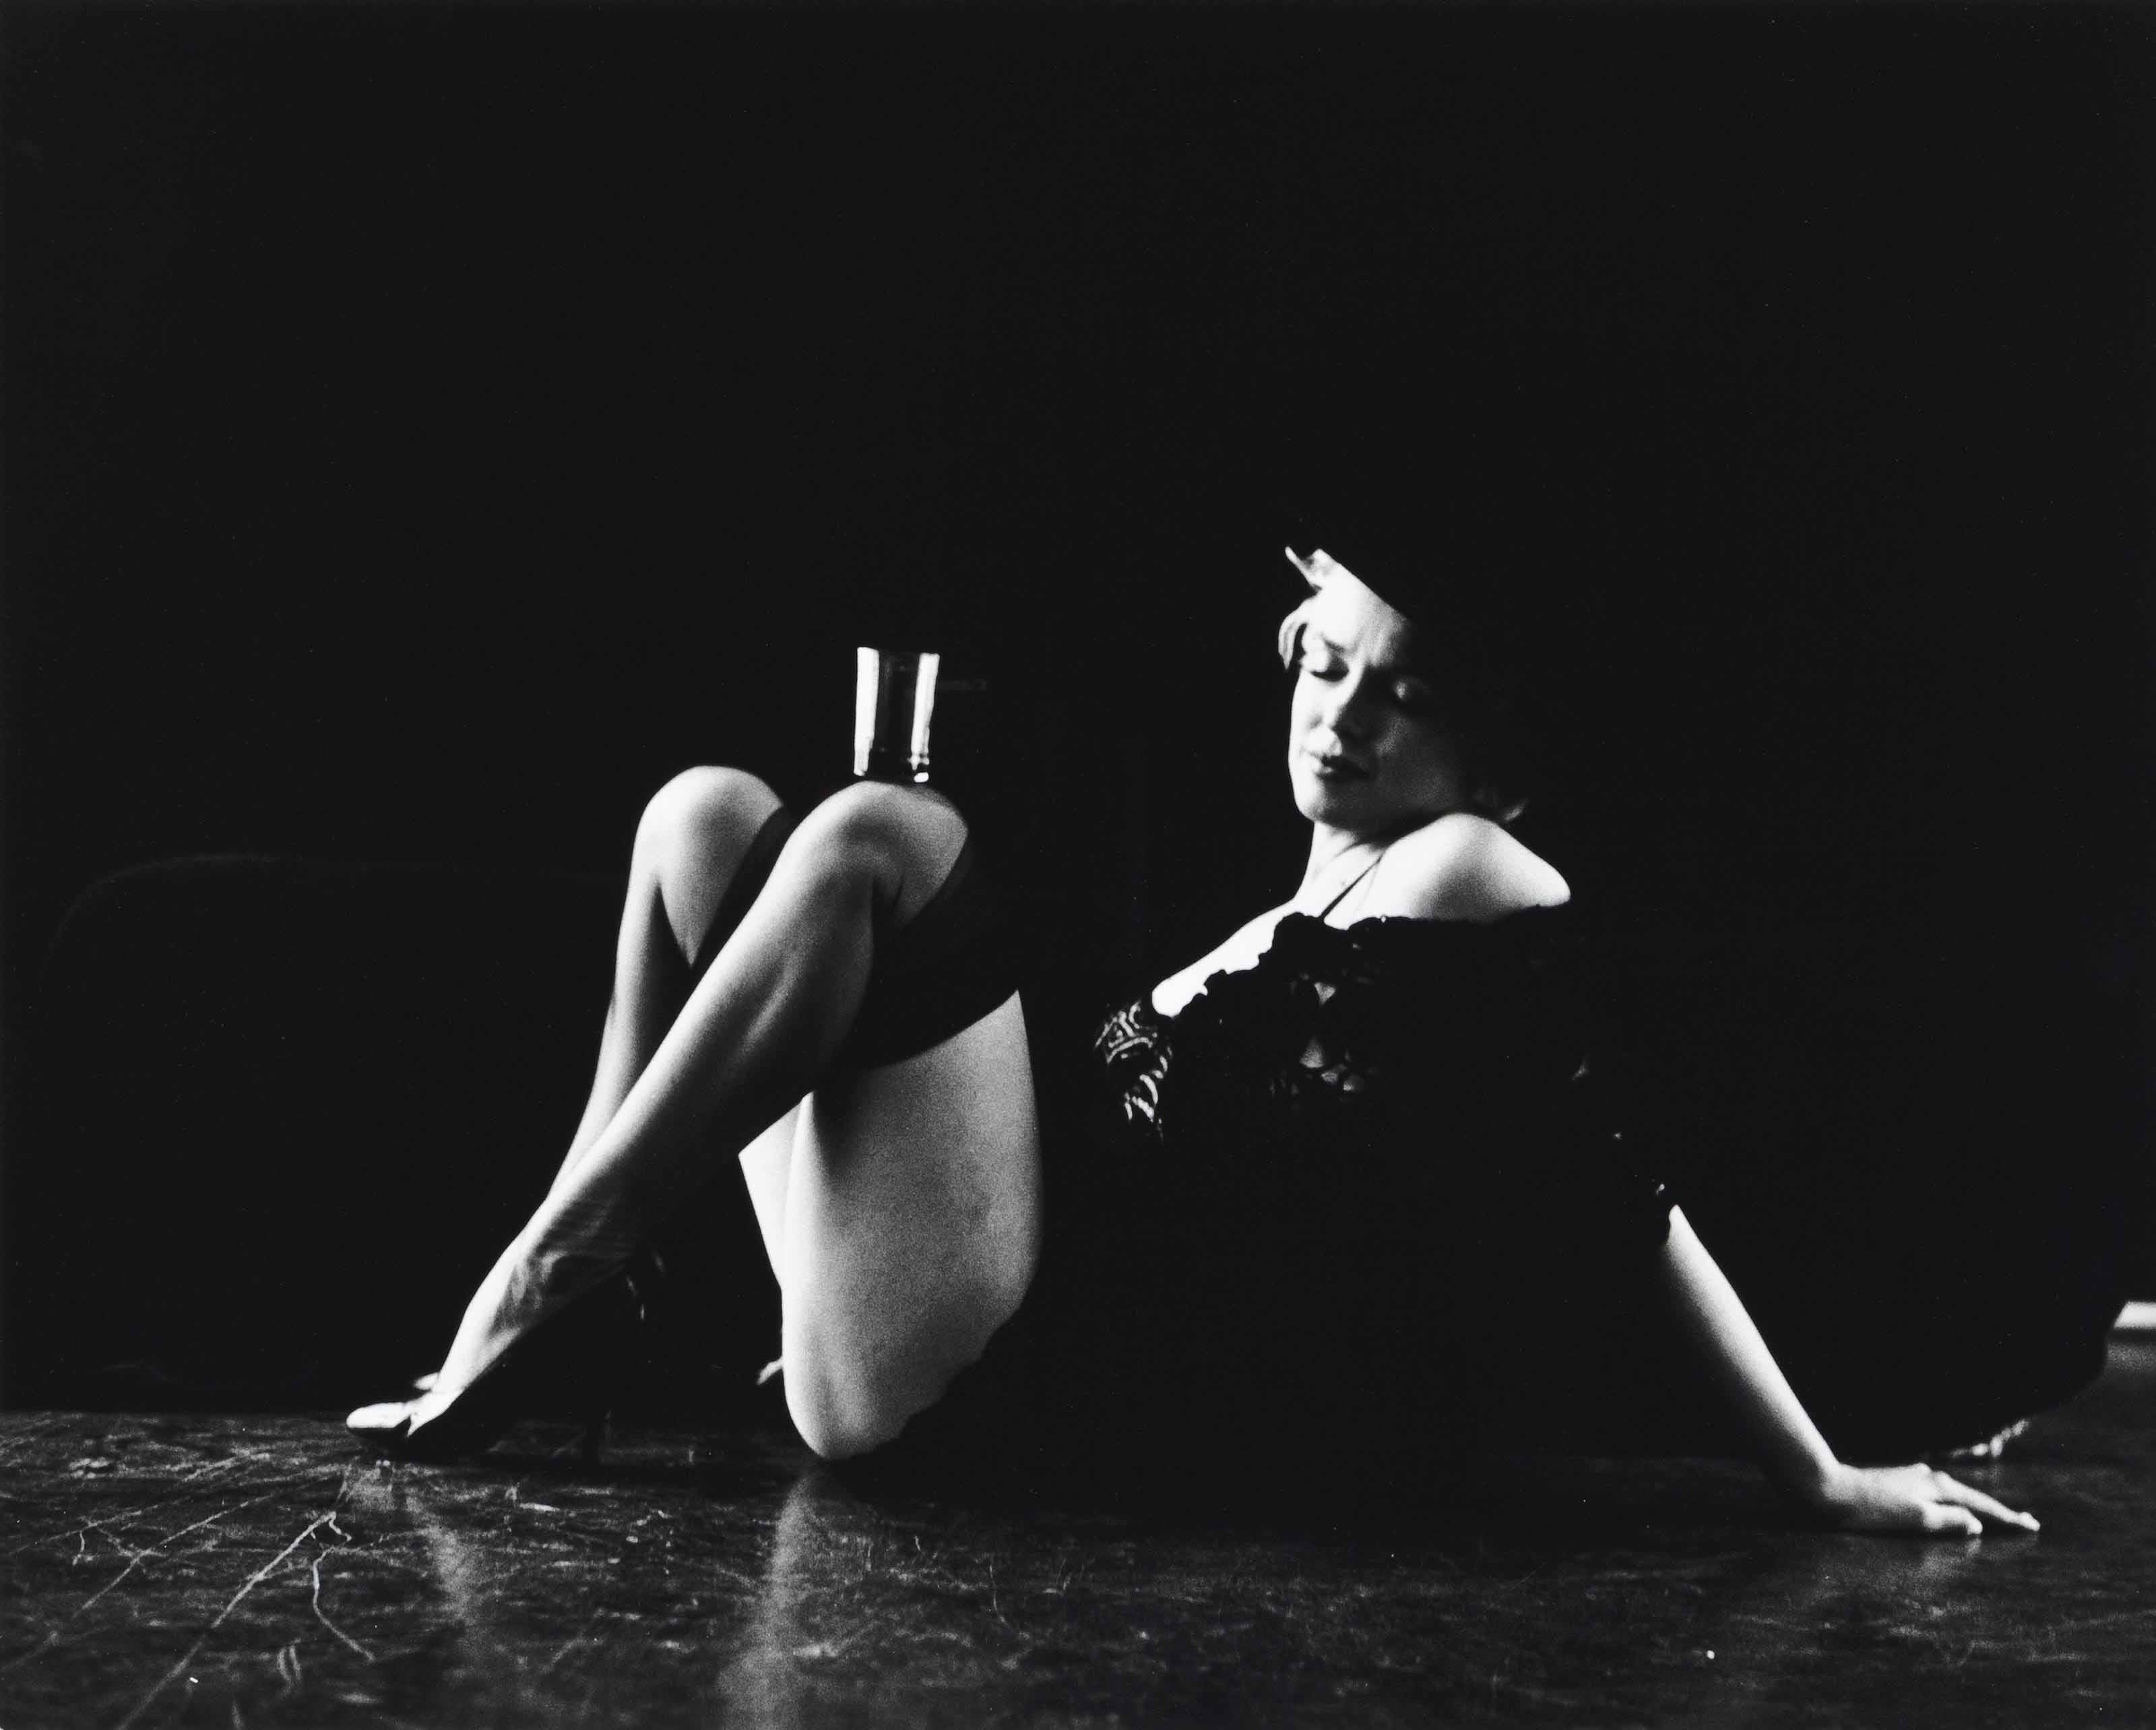 Marilyn Monroe from the 'Black Sitting', 1956